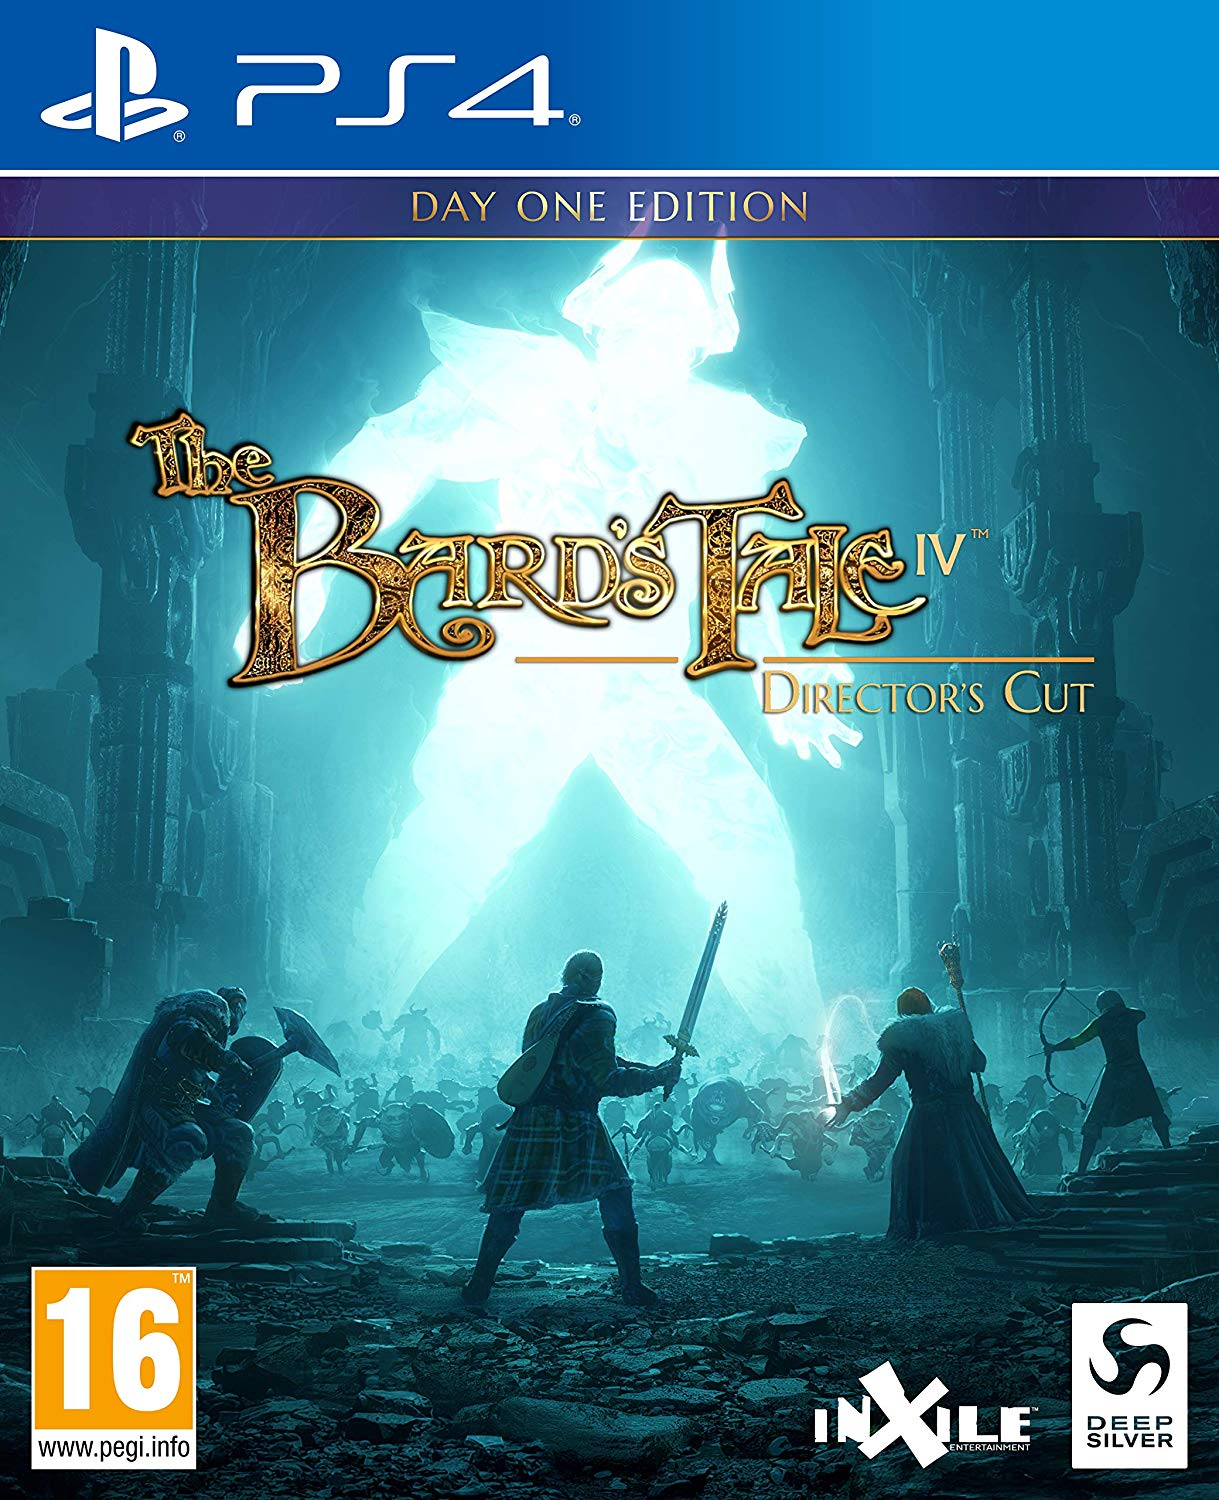 The Bards Tale IV Directors Cut Day One Edition - PlayStation 4 Játékok